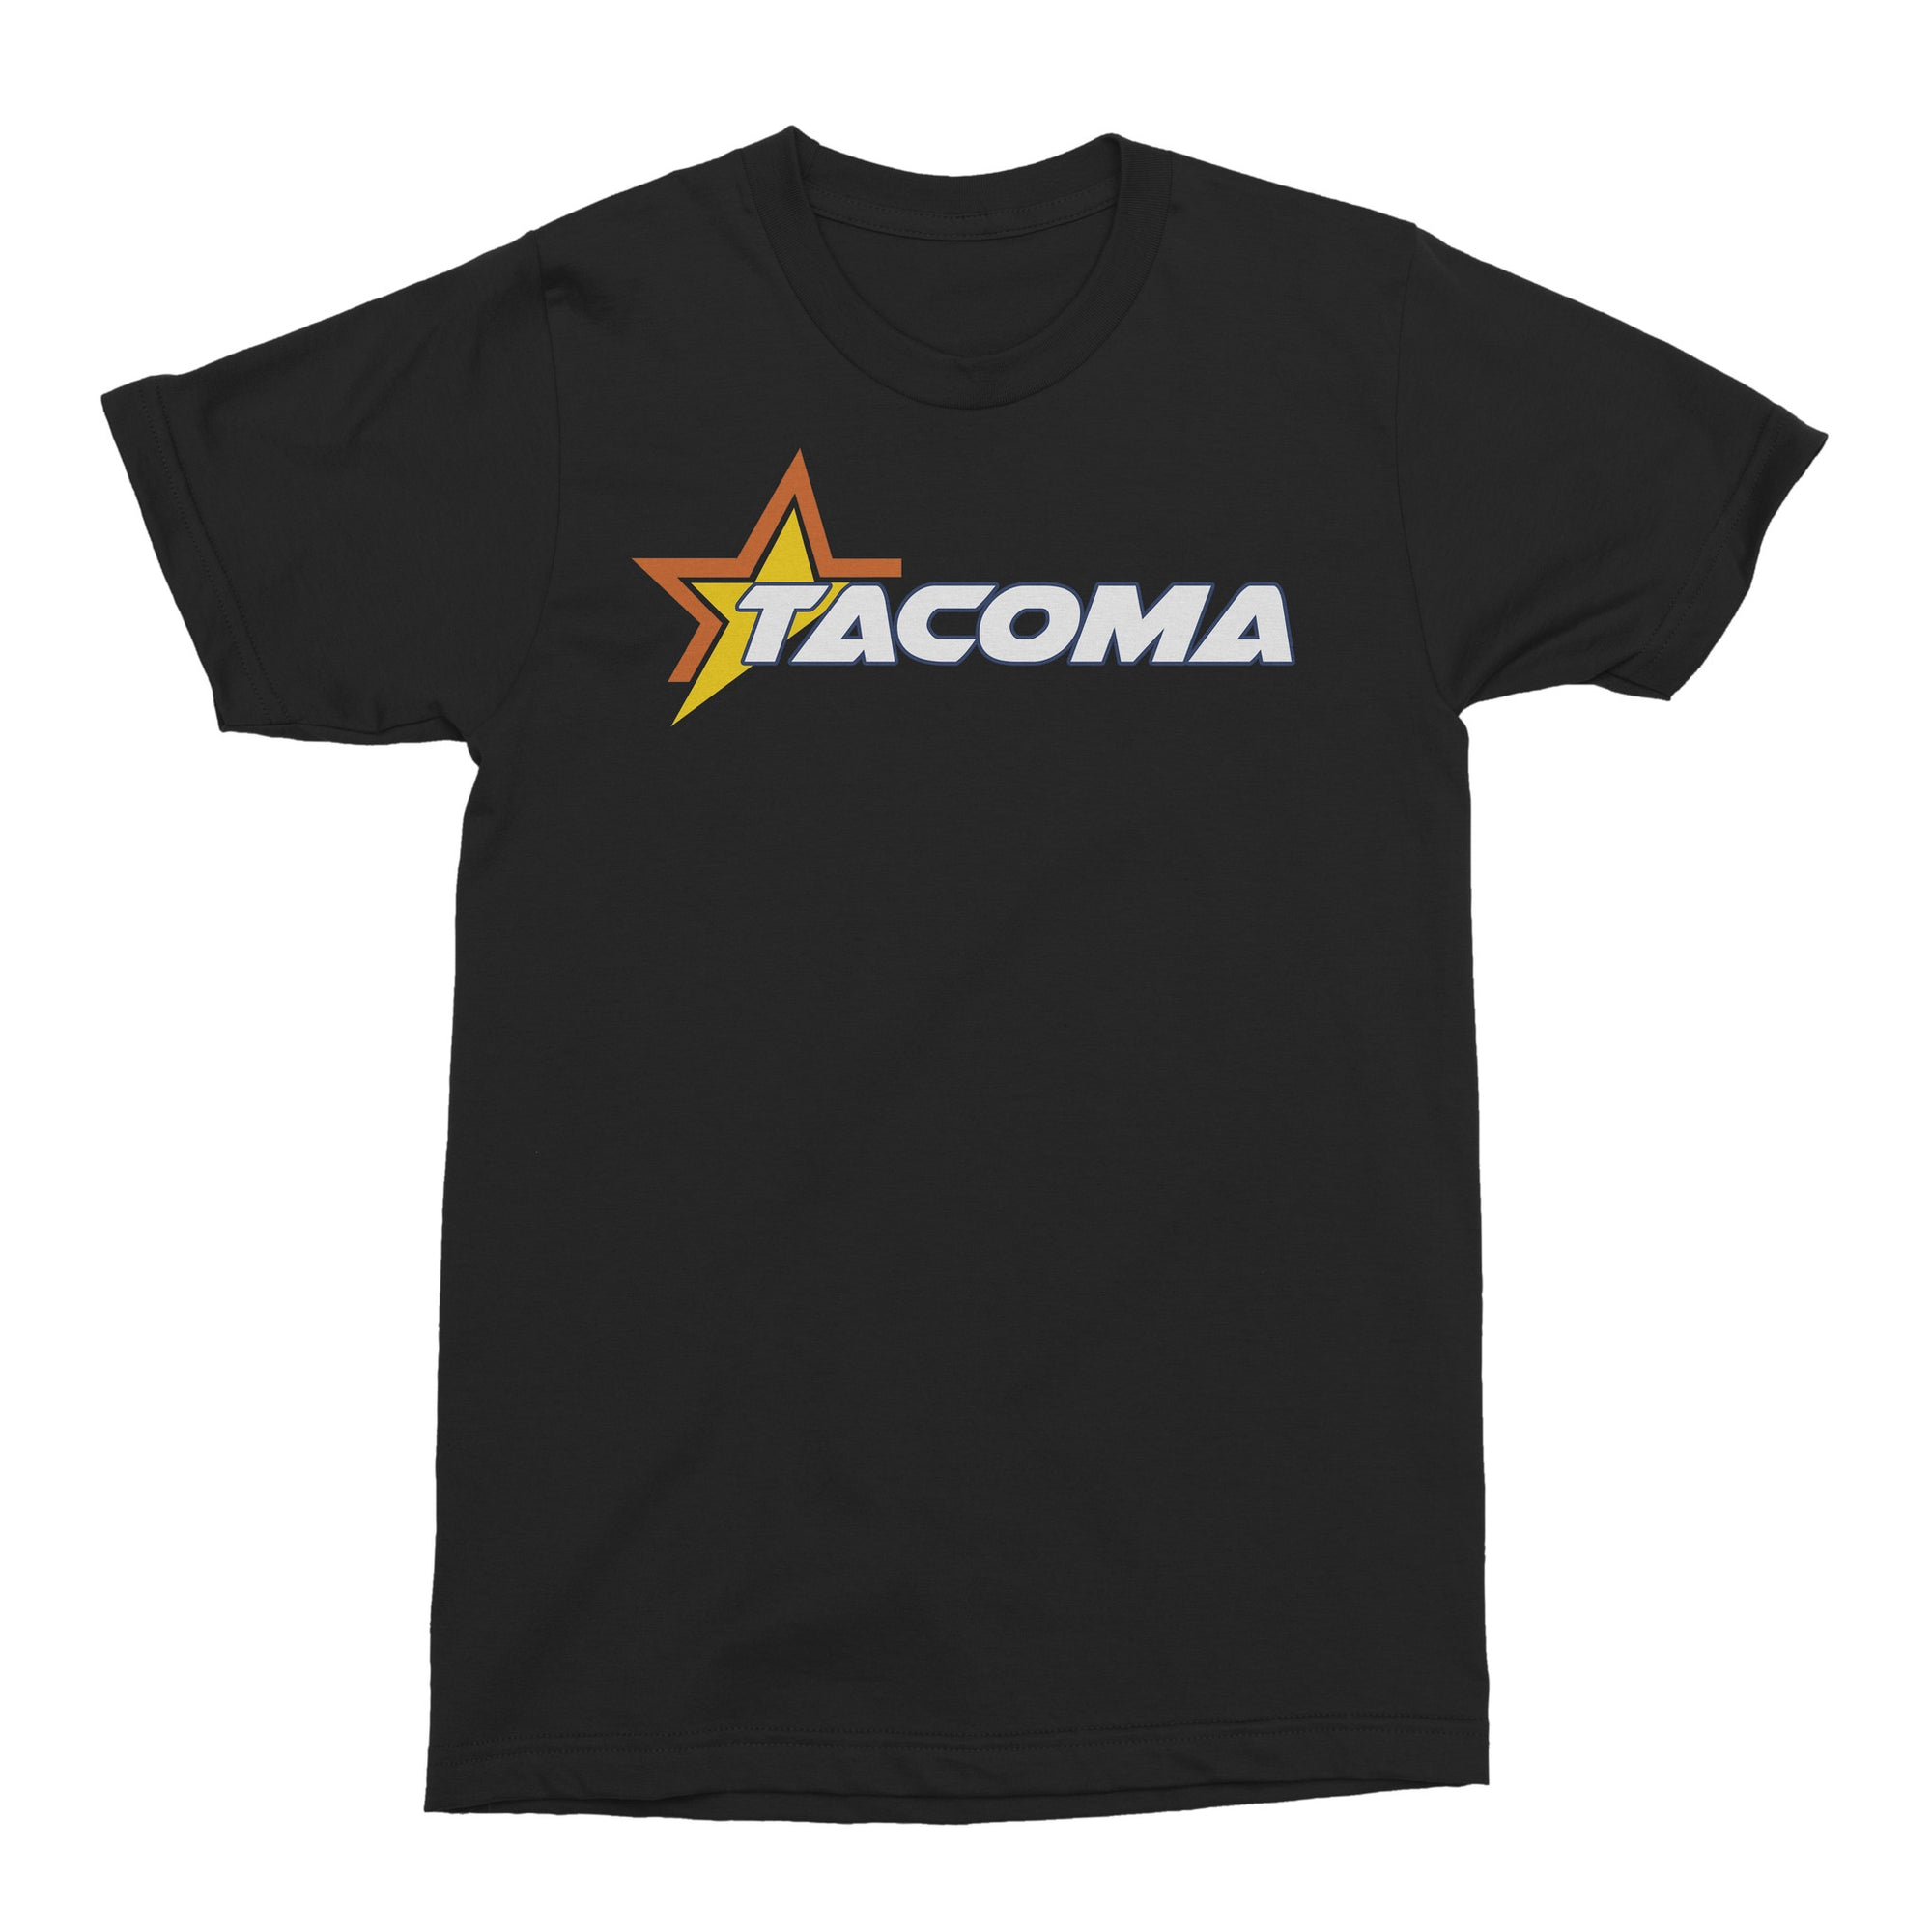 Tacoma Stars T T-SHIRT - Square Boy Clothing